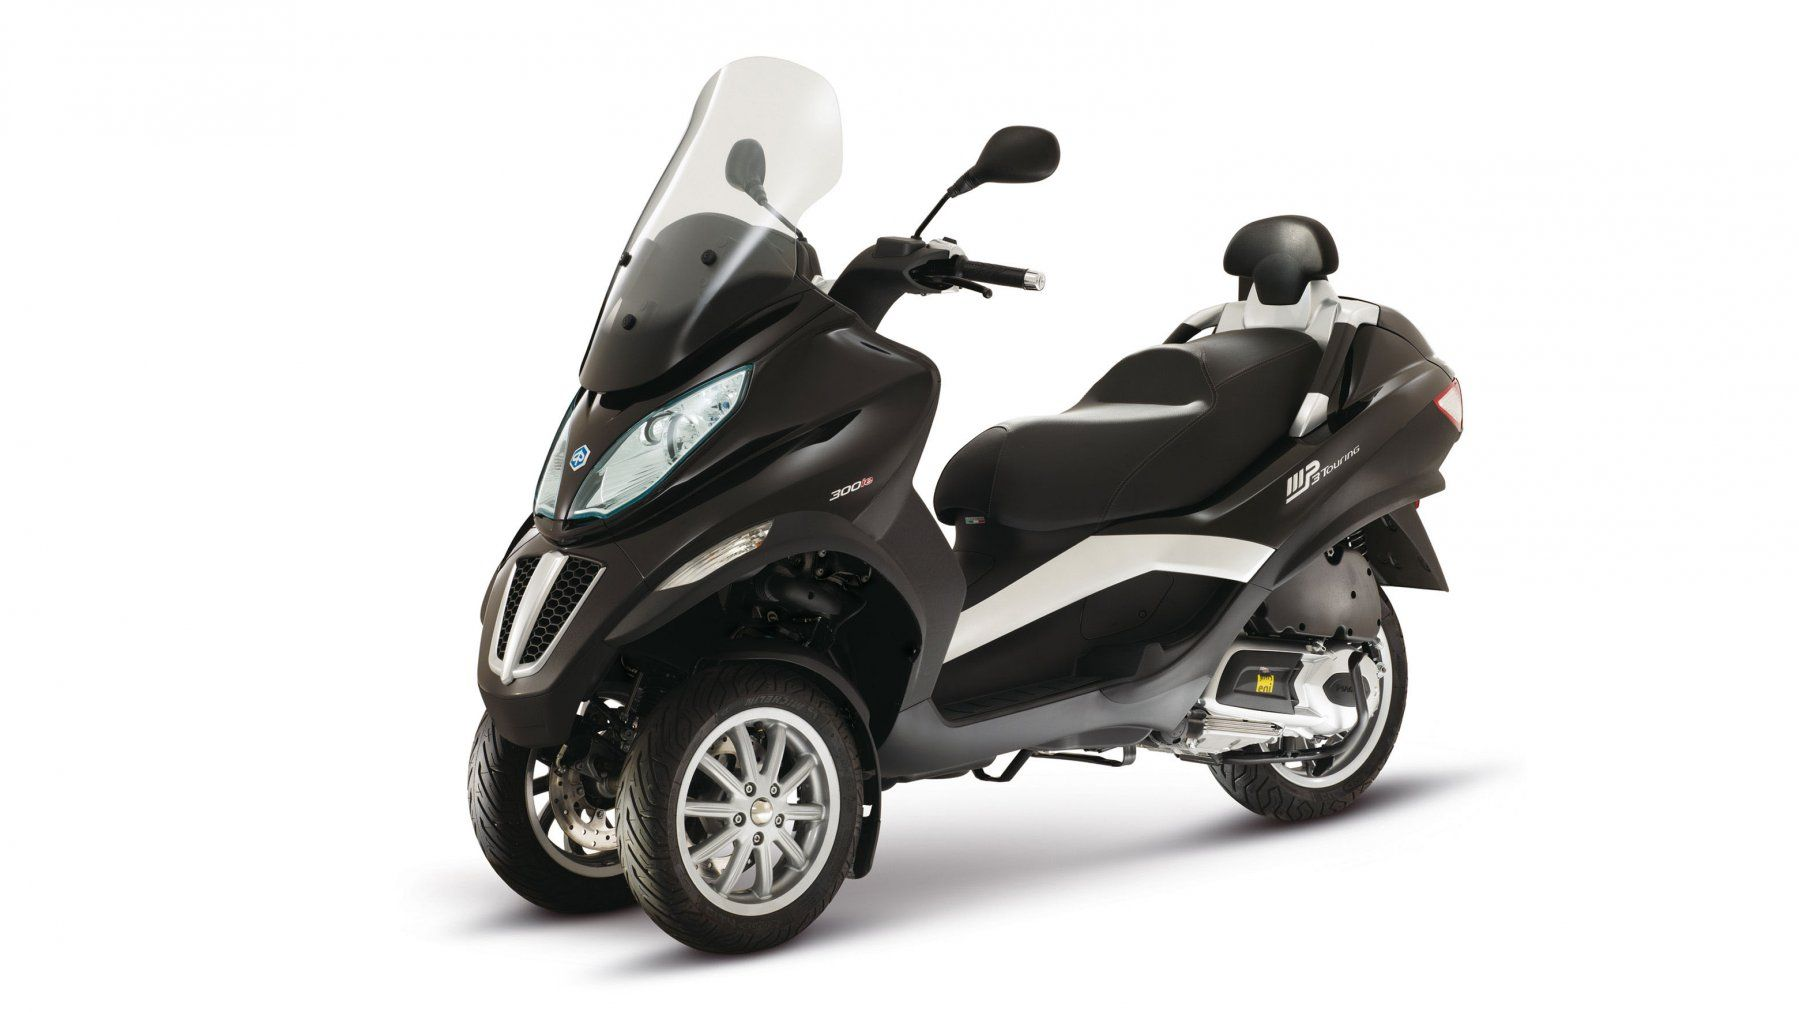 piaggio mp3 moto or not moto moto scooter motos d 39 occasion. Black Bedroom Furniture Sets. Home Design Ideas